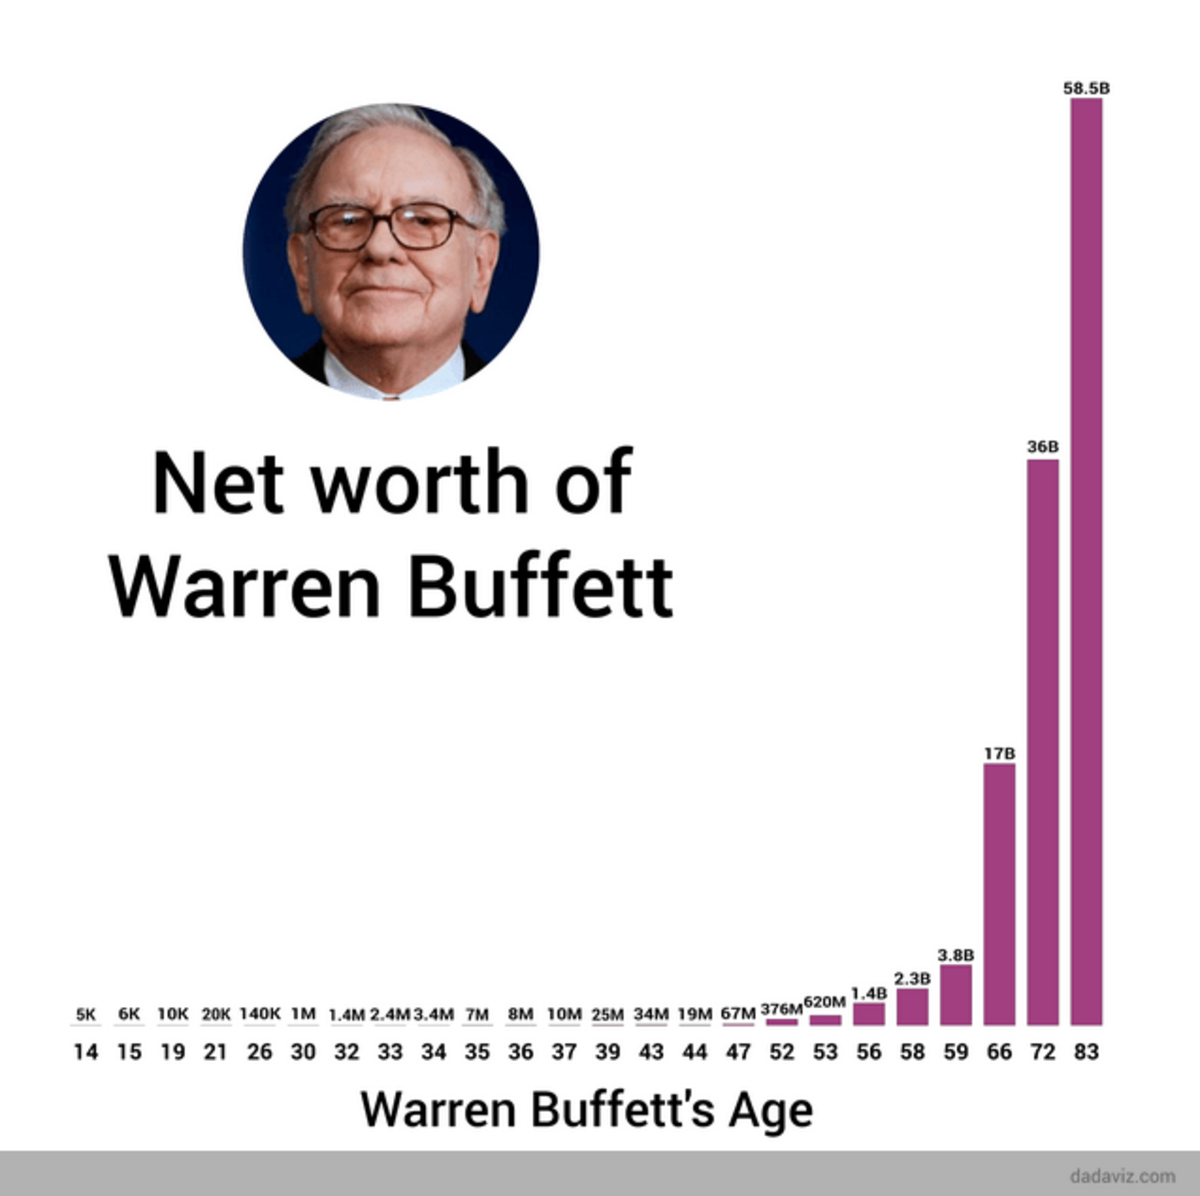 To put things into perspective: Warren earns the majority of his wealth after the age of 60.